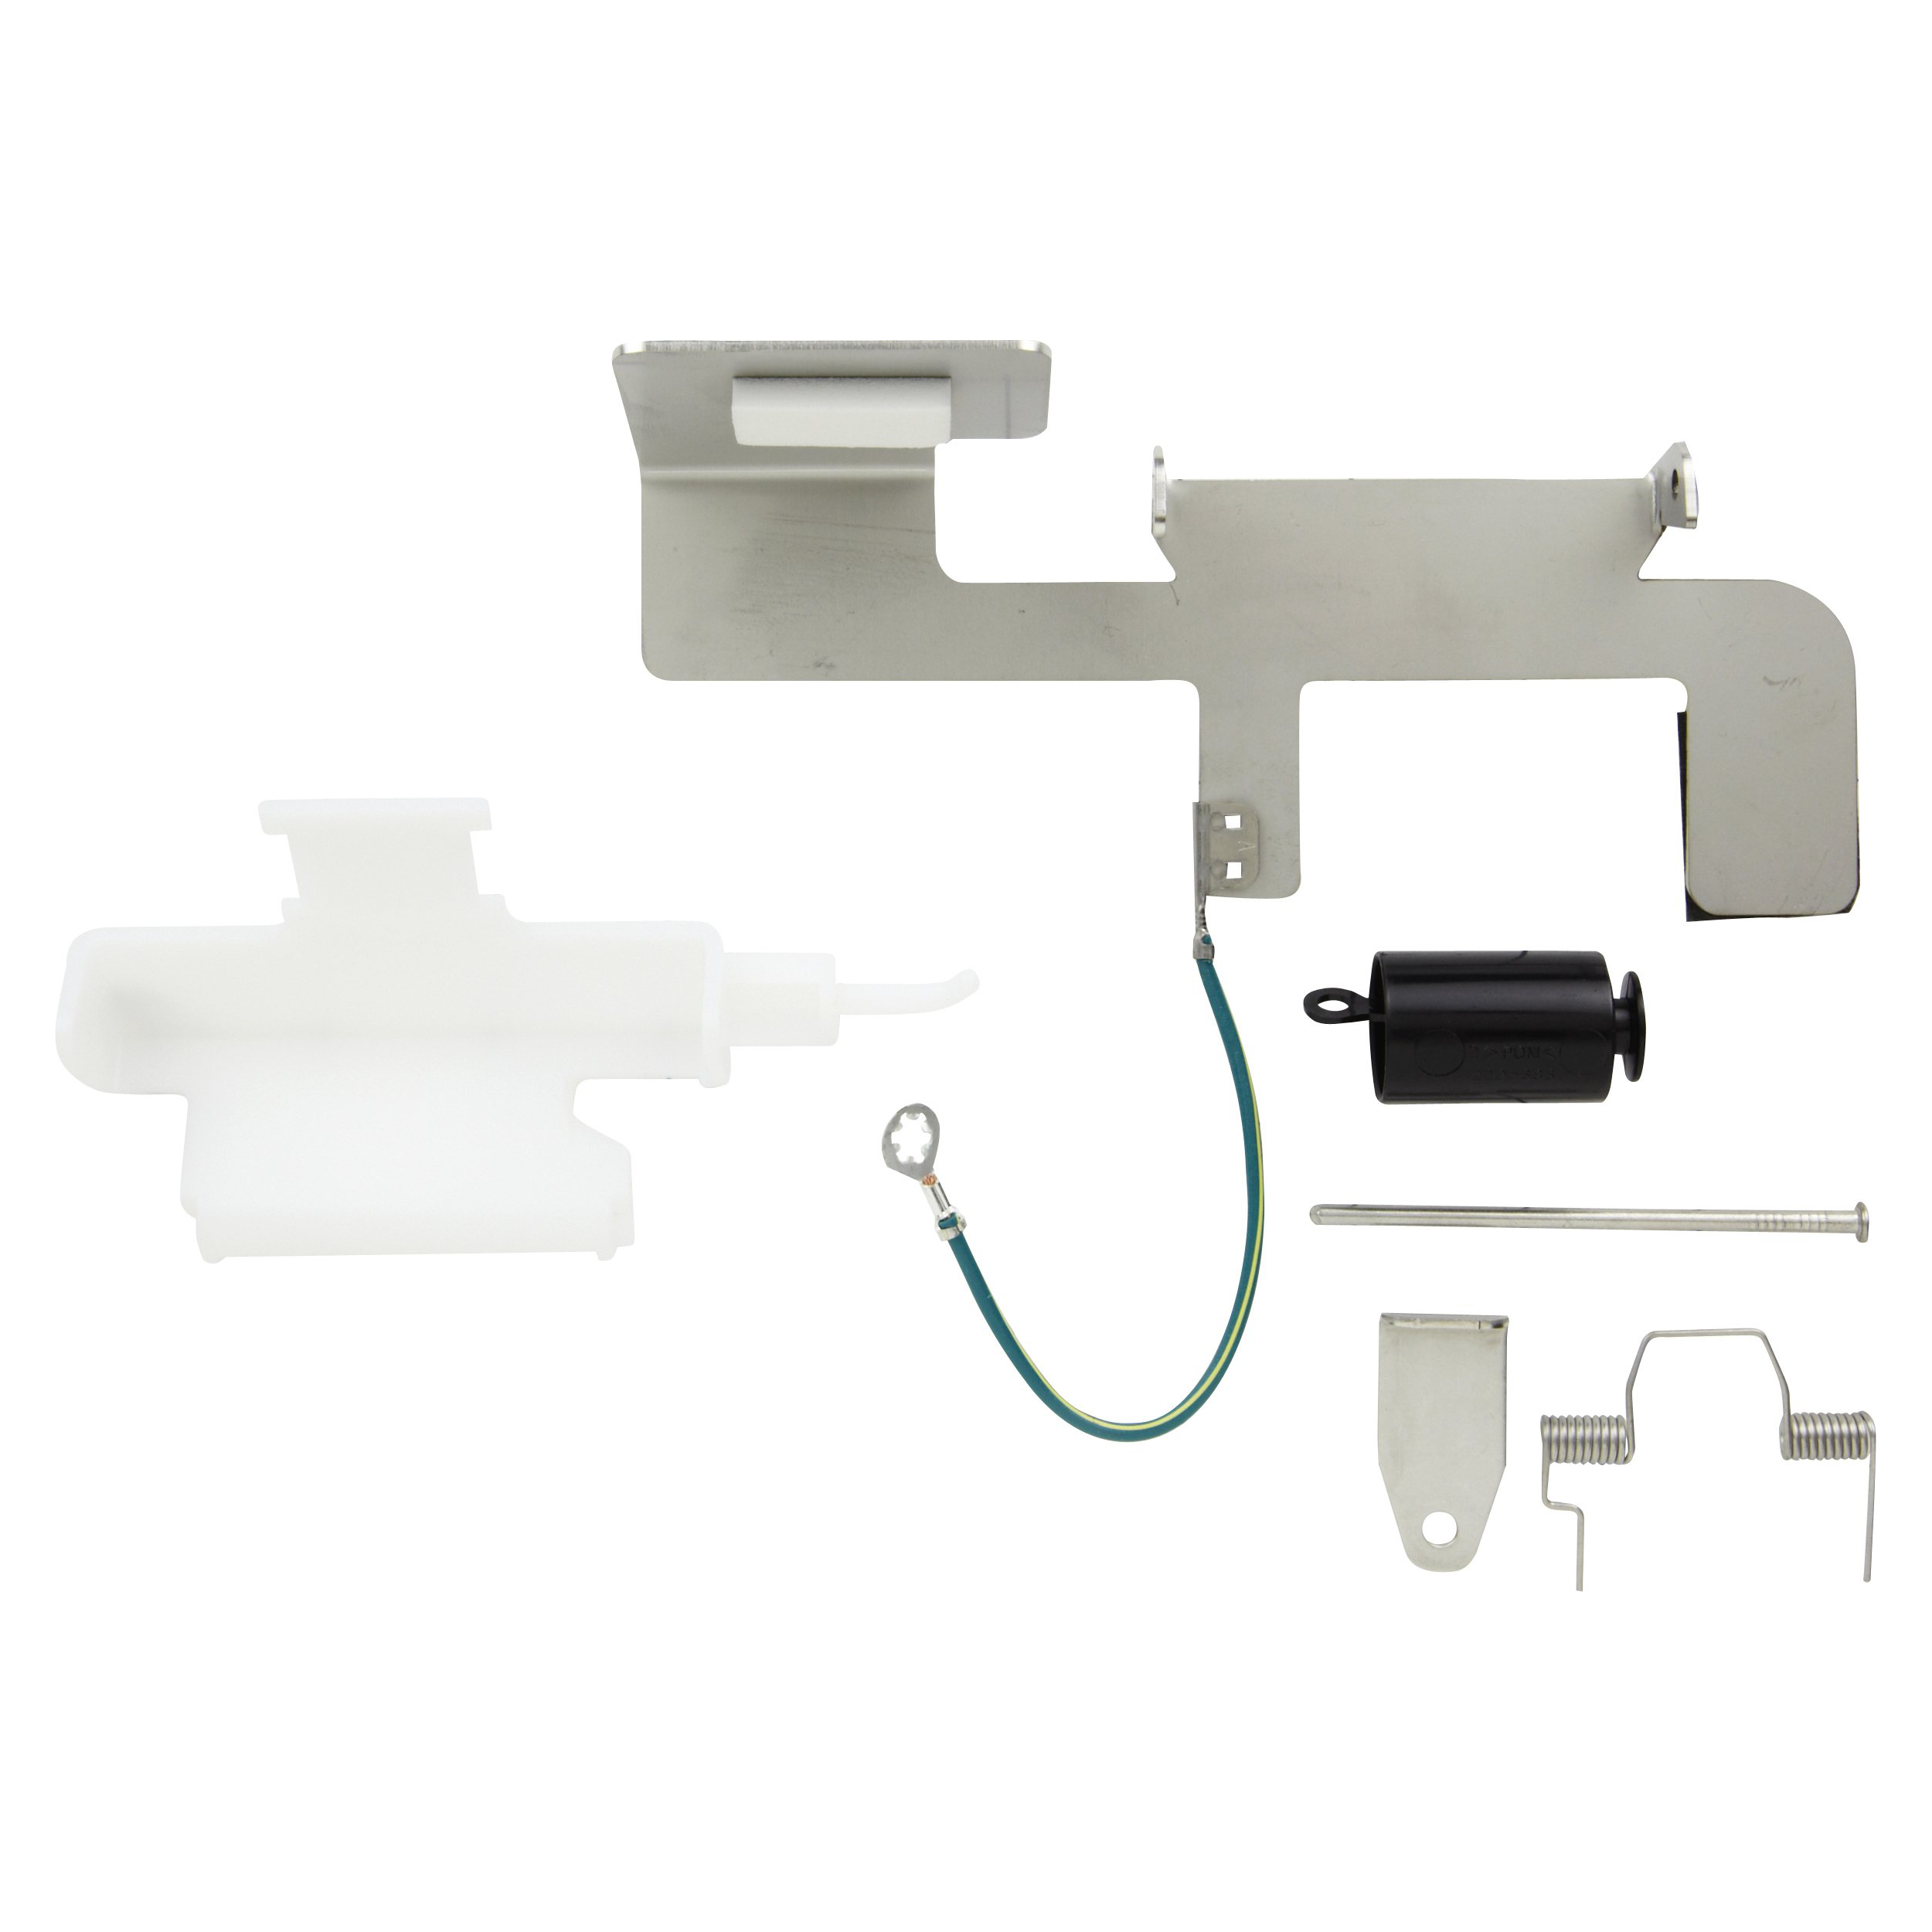 Kenmore 106 59592990 Ice Container Dispenser Assembly W